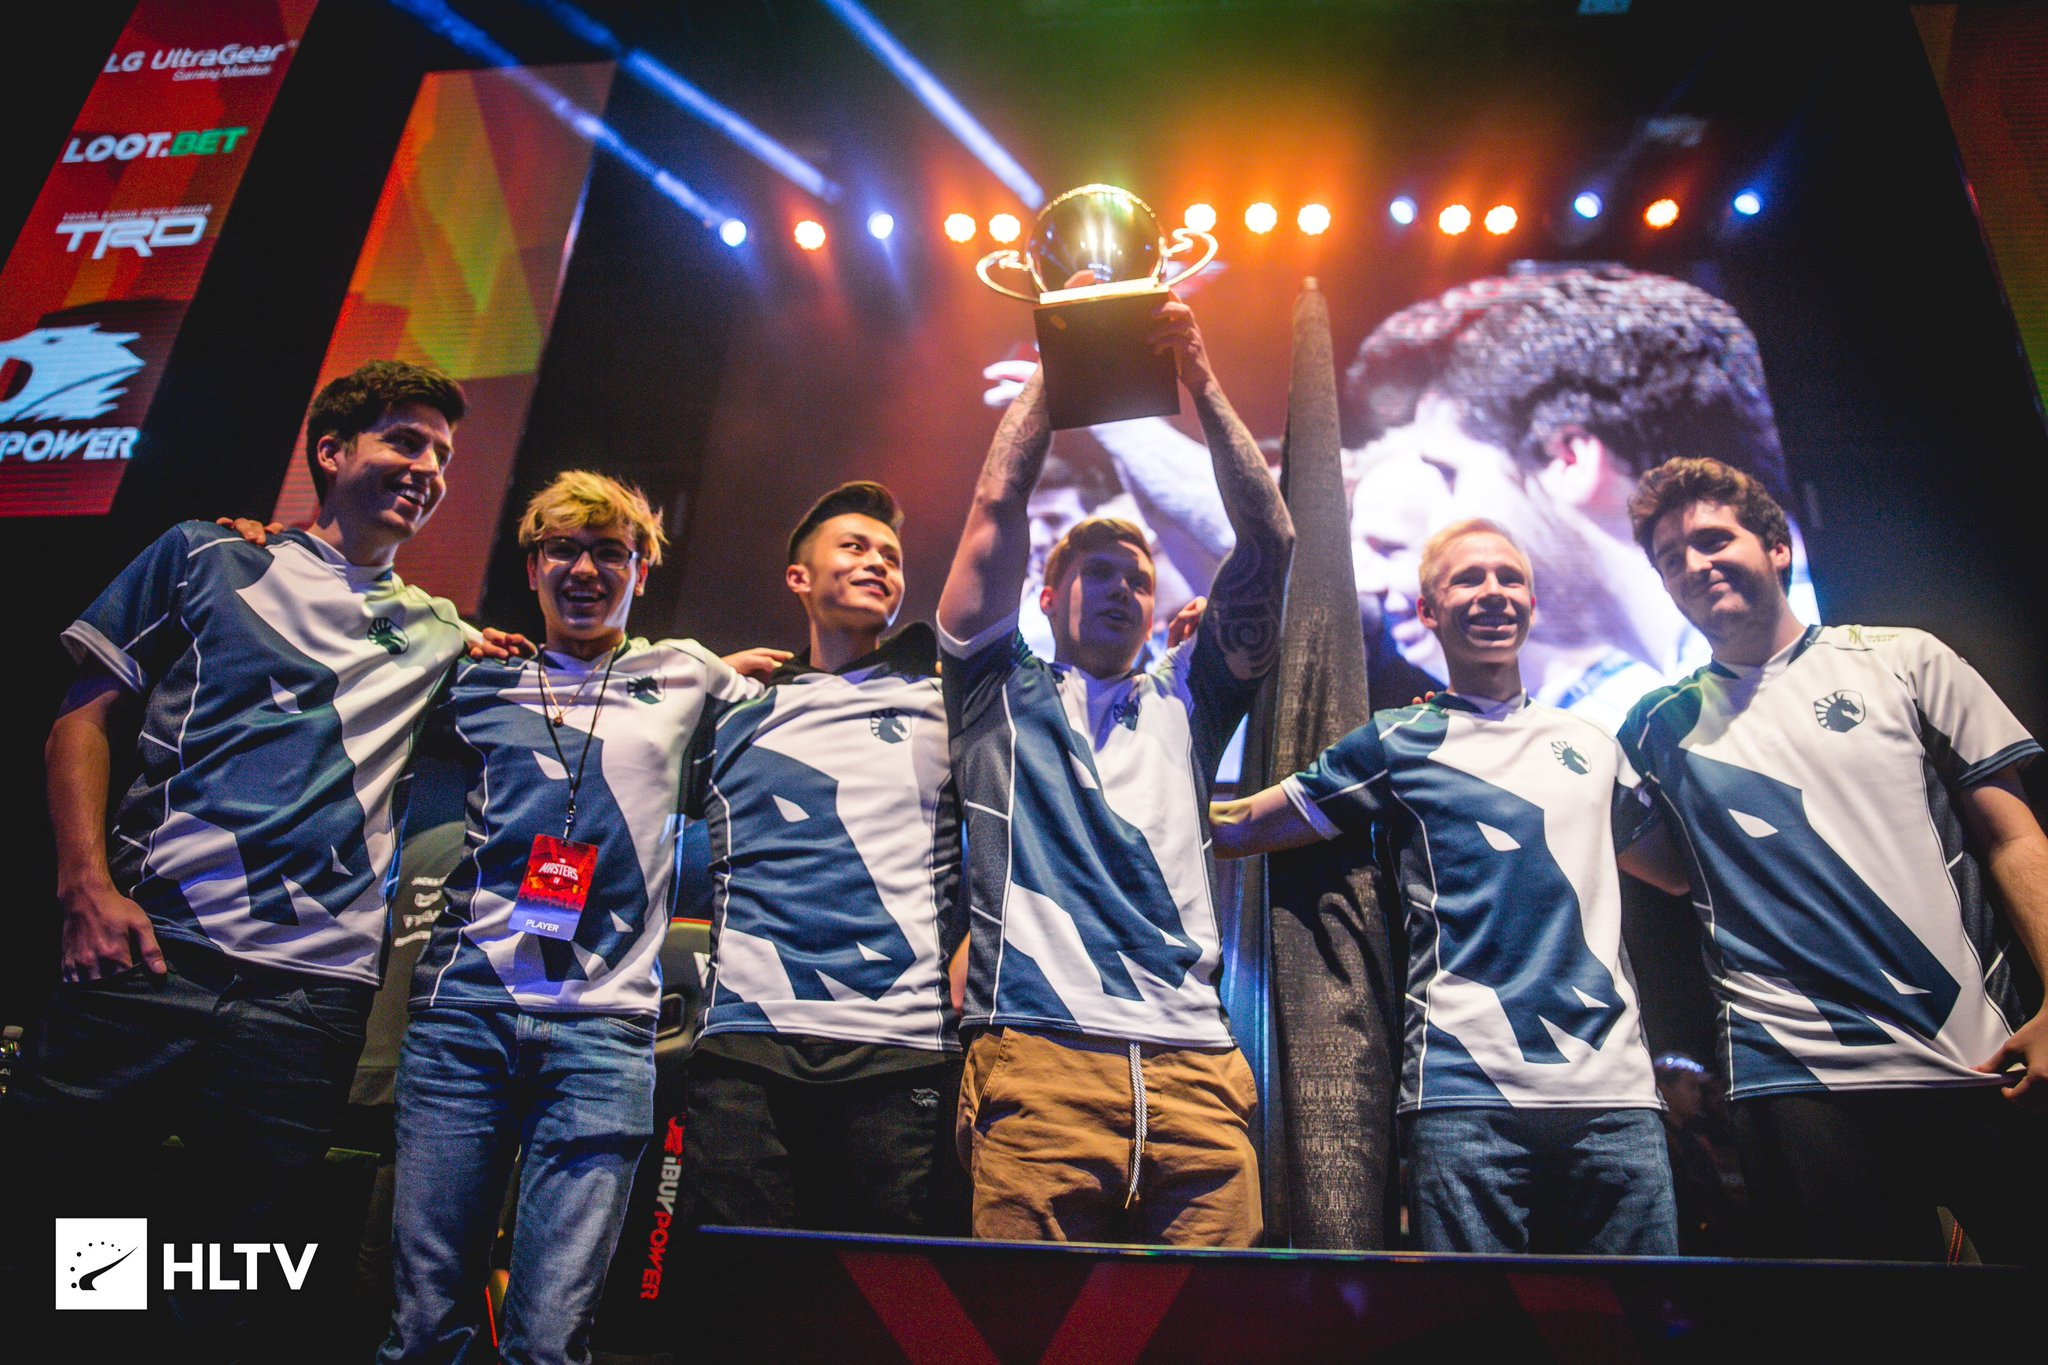 Team Liquid win IBuyPower Masters IV after defeating Astralis 2-1 in the Grand finals.